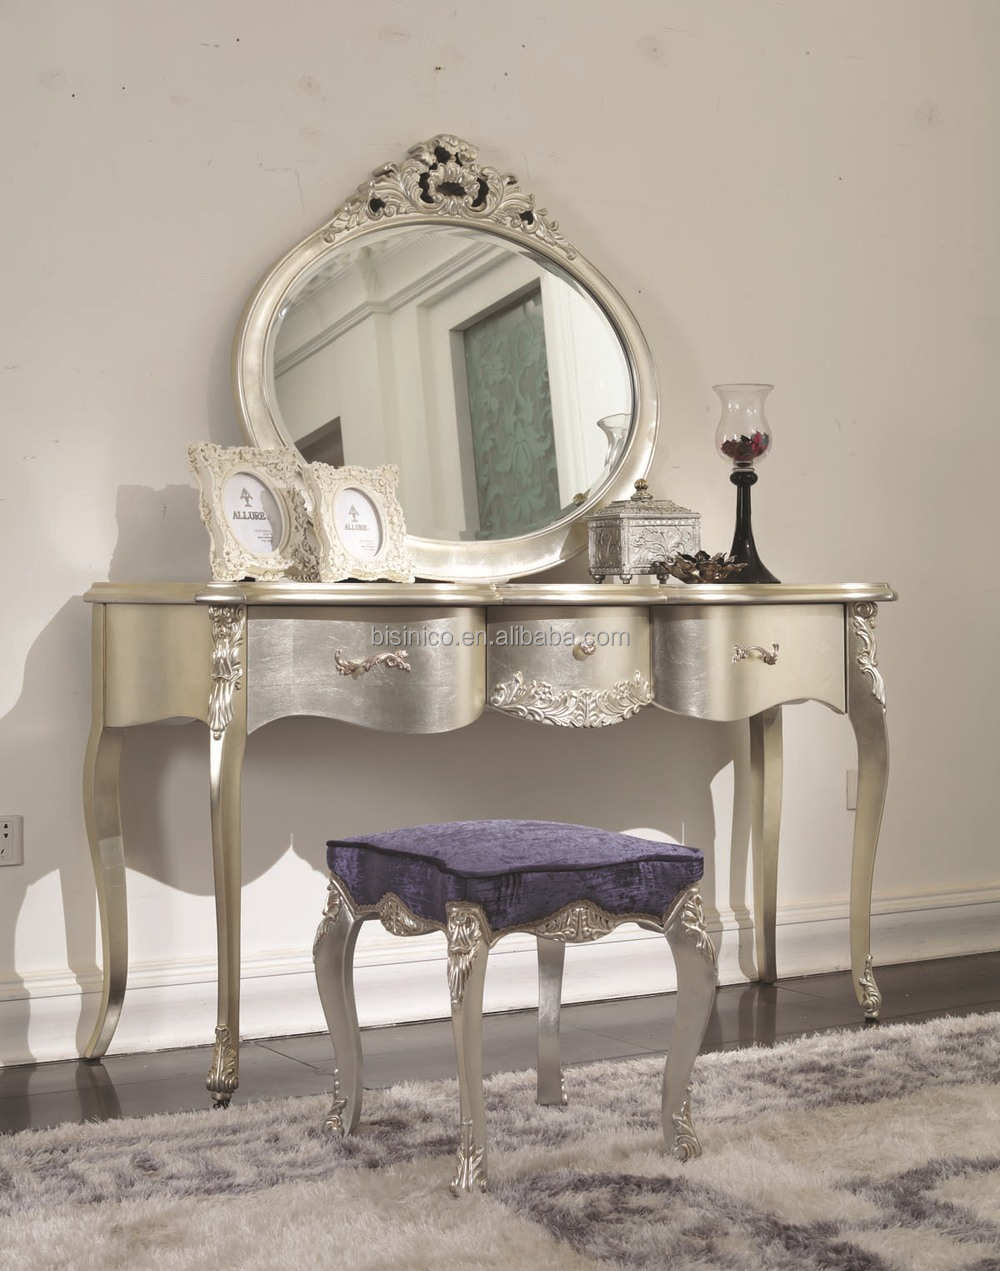 Silver Furniture Bedroom Bisini New Classical Furnituresolid Wood Champagne Silver Color